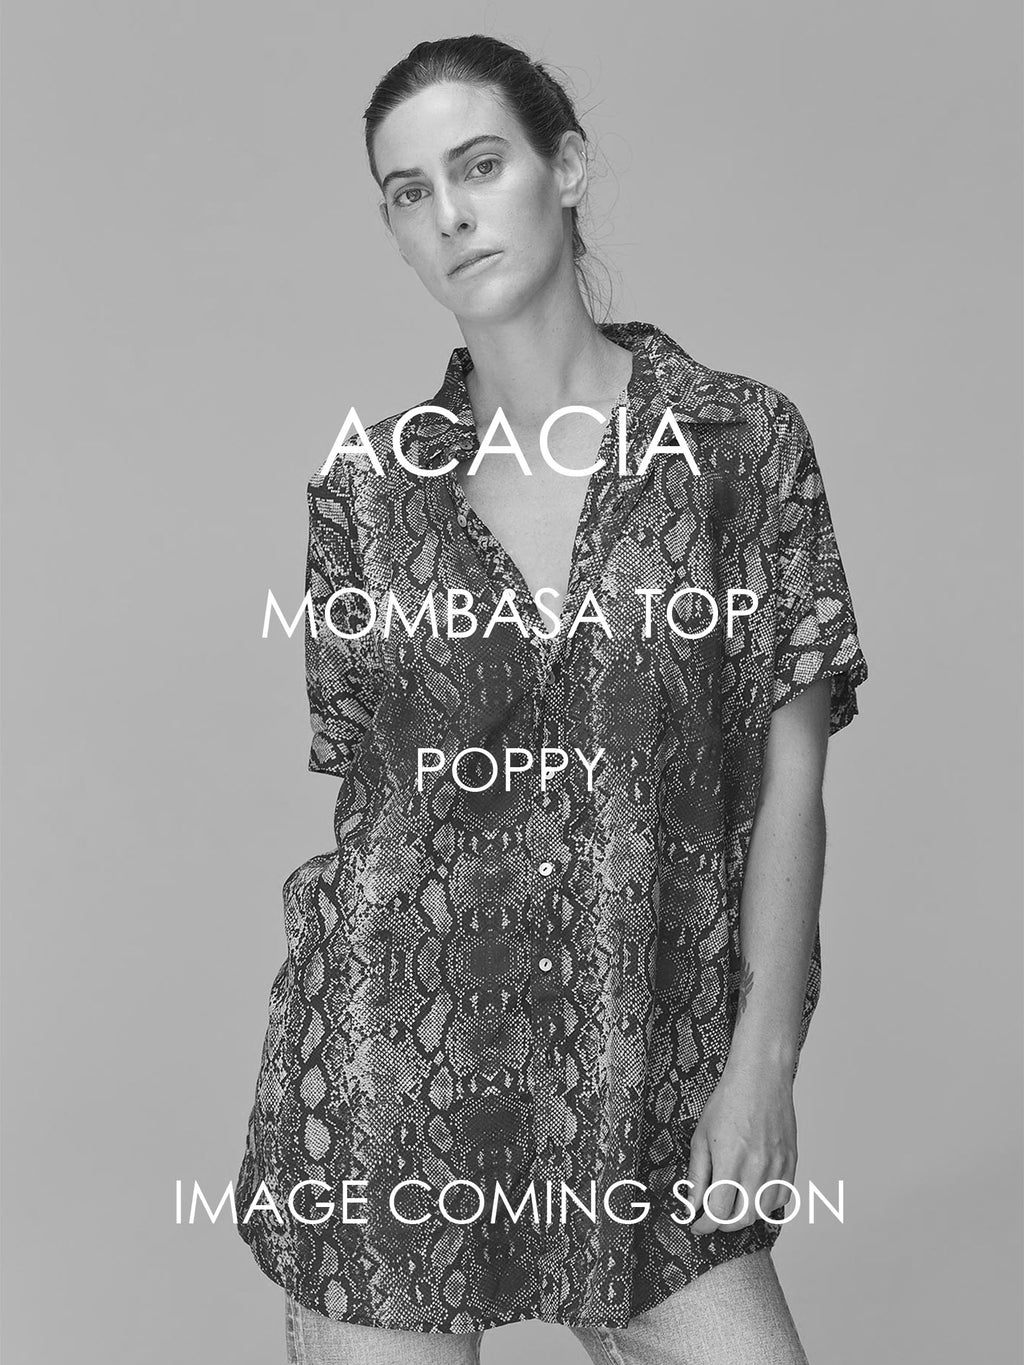 ACACIA Mombasa Top | Poppy